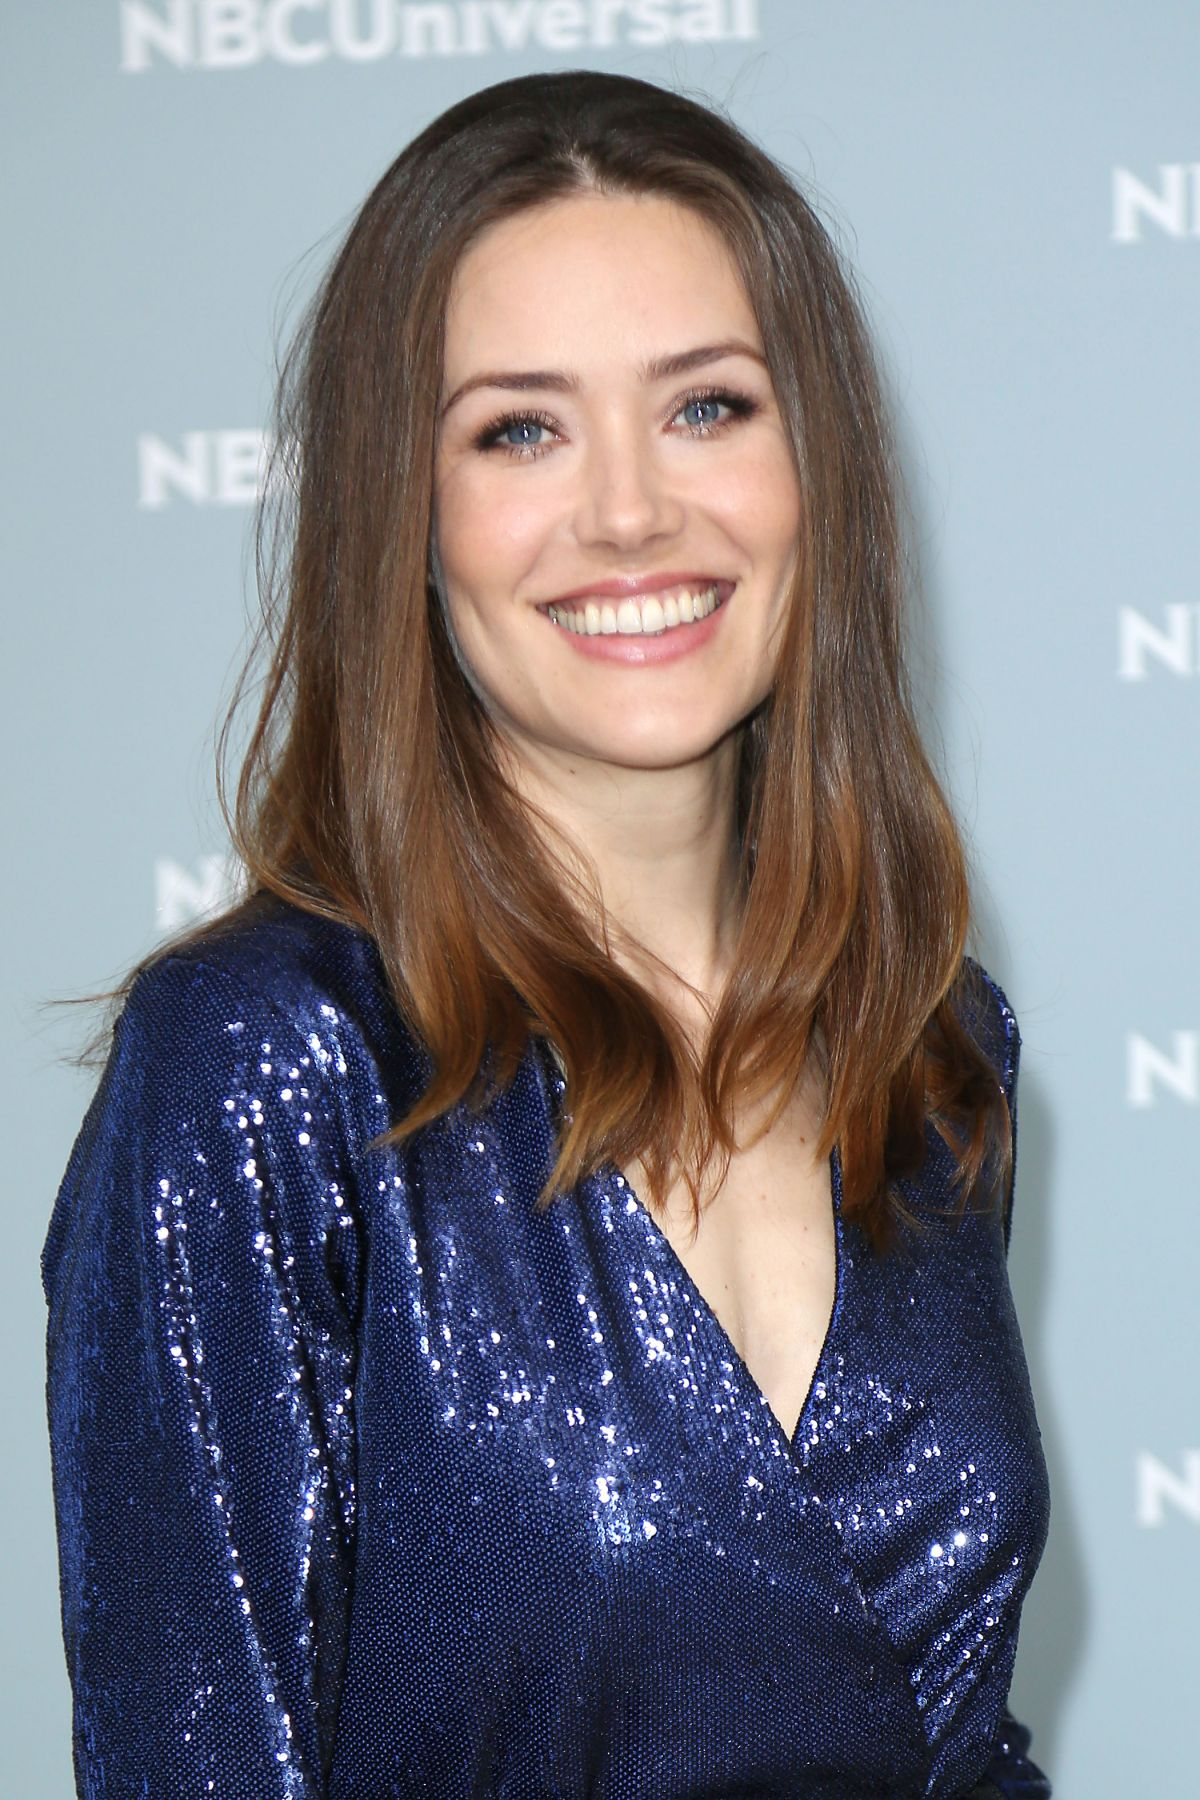 MEGAN BOONE at NBCUniversal Upfront Presentation in New